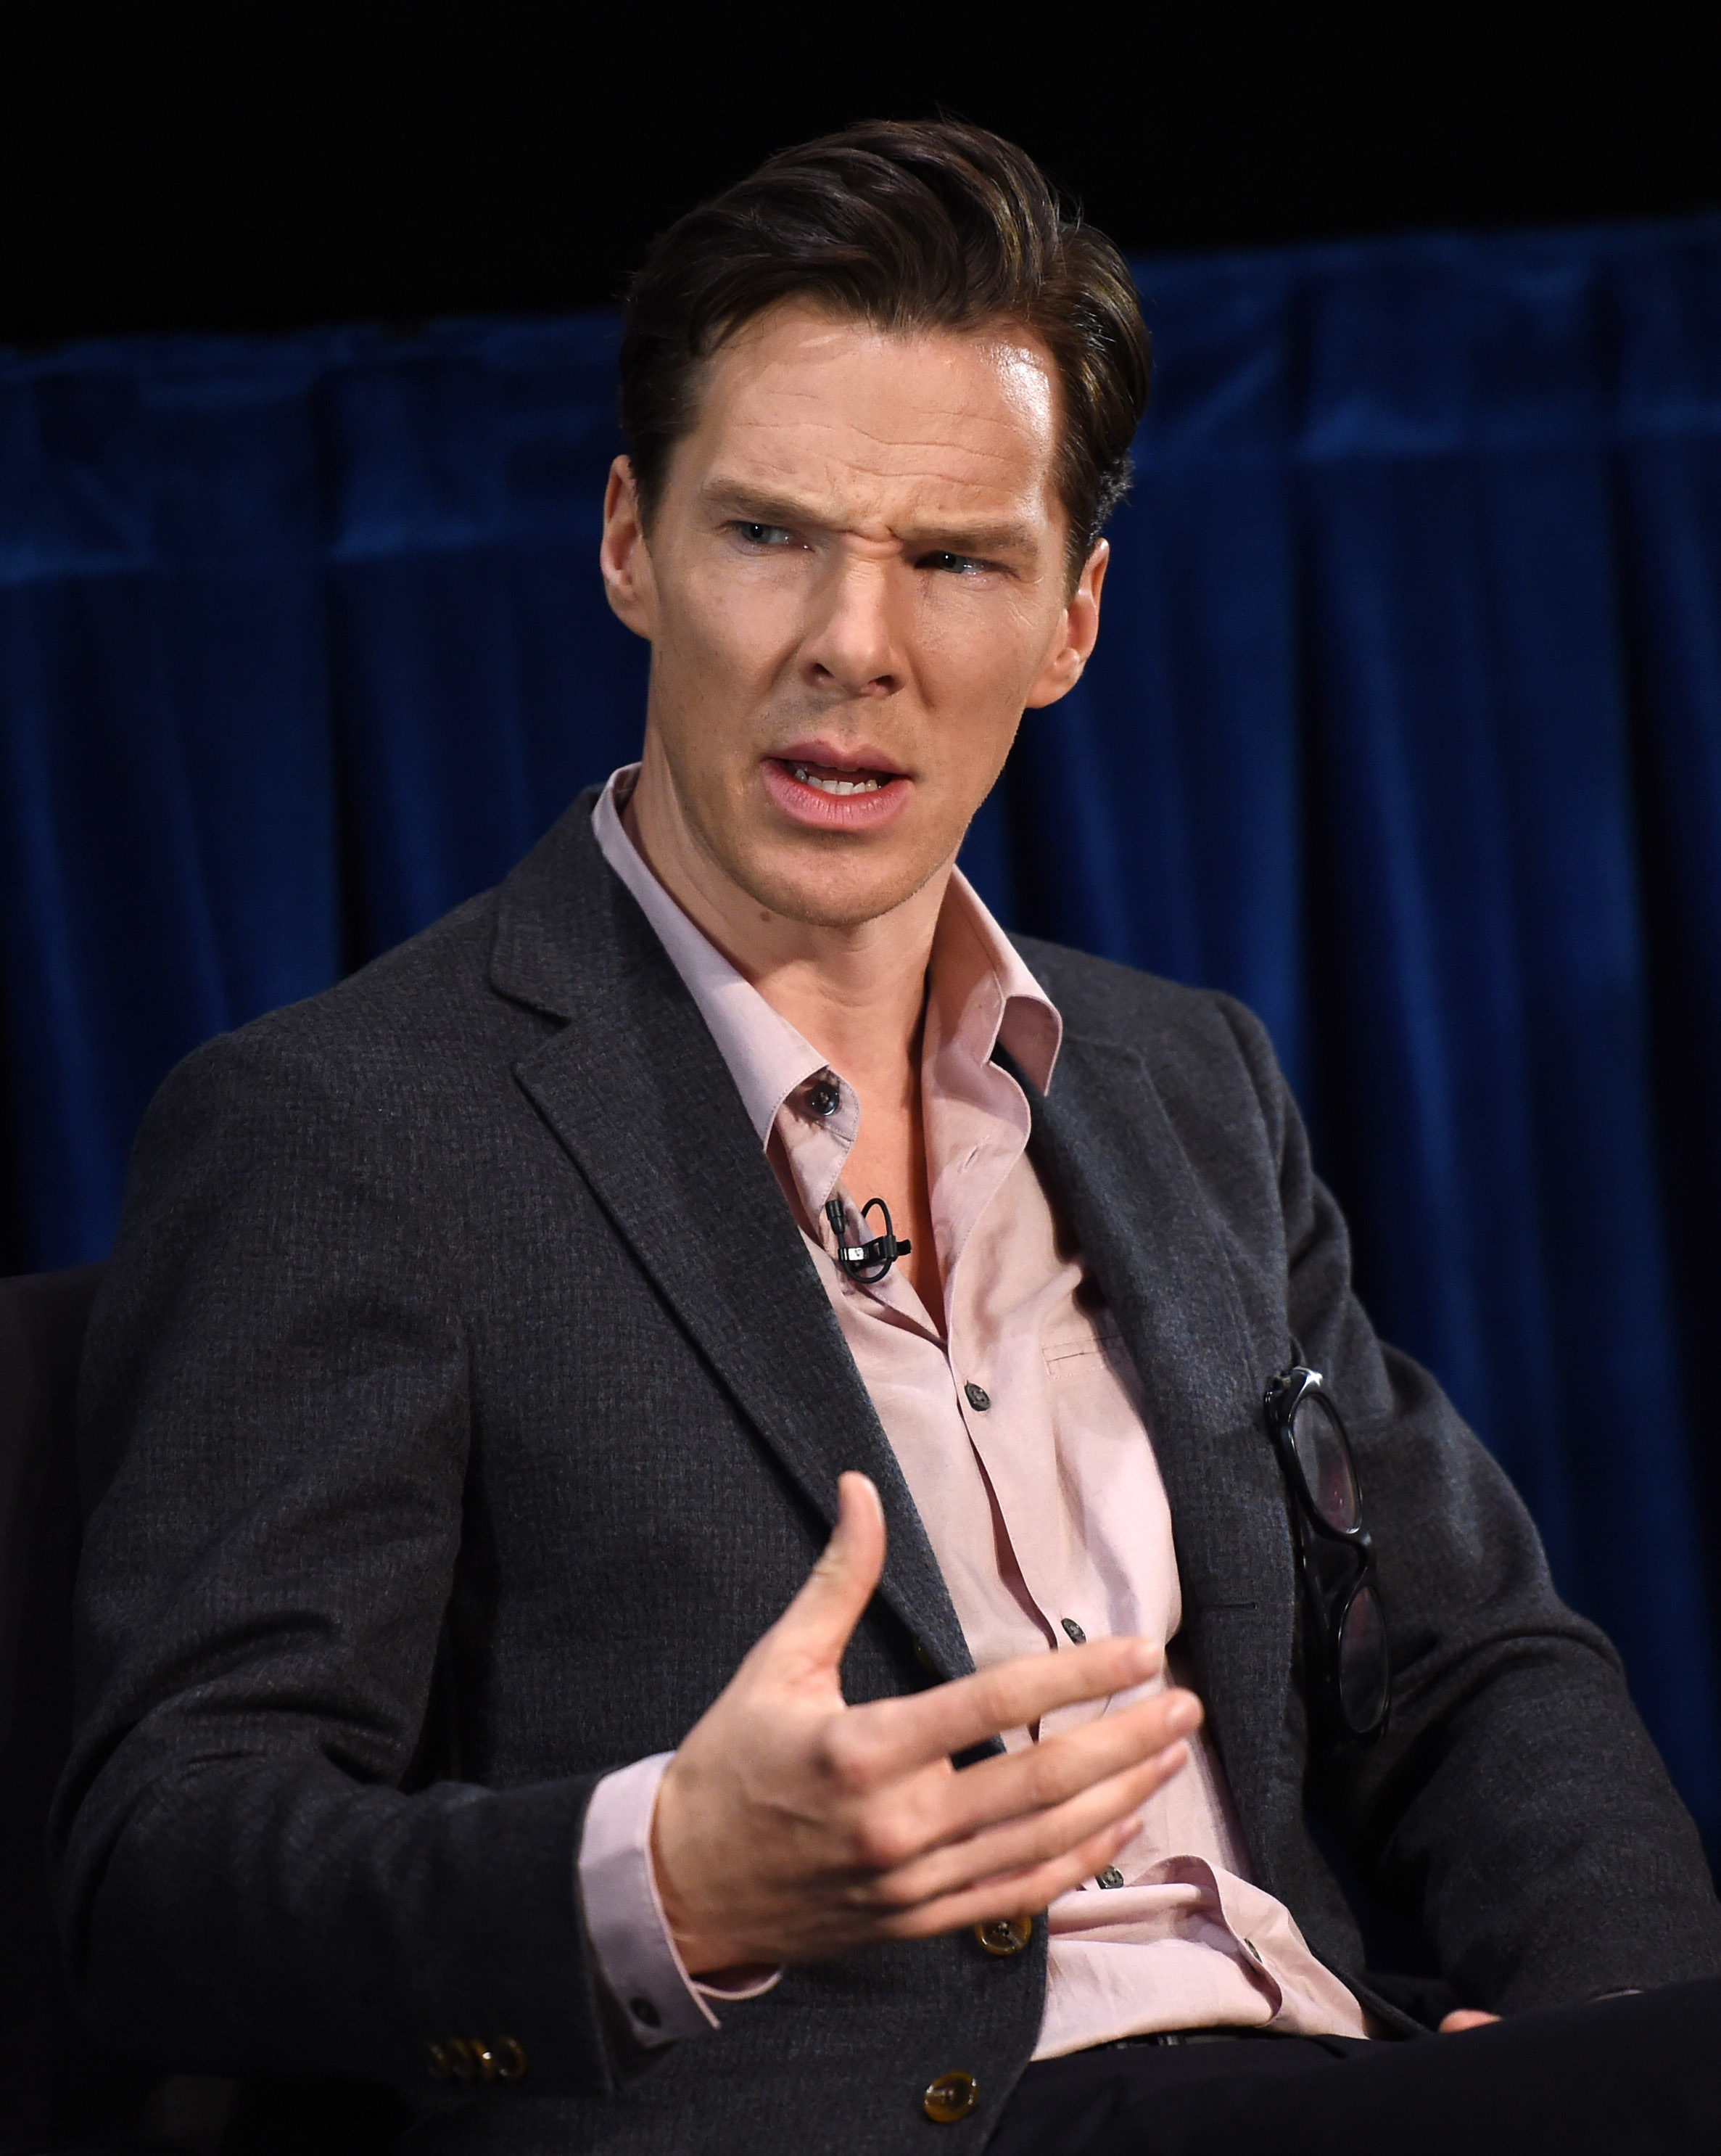 Actor Benedict Cumberbatch attends the Times Talks and TIFF In Los Angeles discussion of  The Imitation Game  at The Paley Center for Media on February 16, 2015 in Beverly Hills, California.